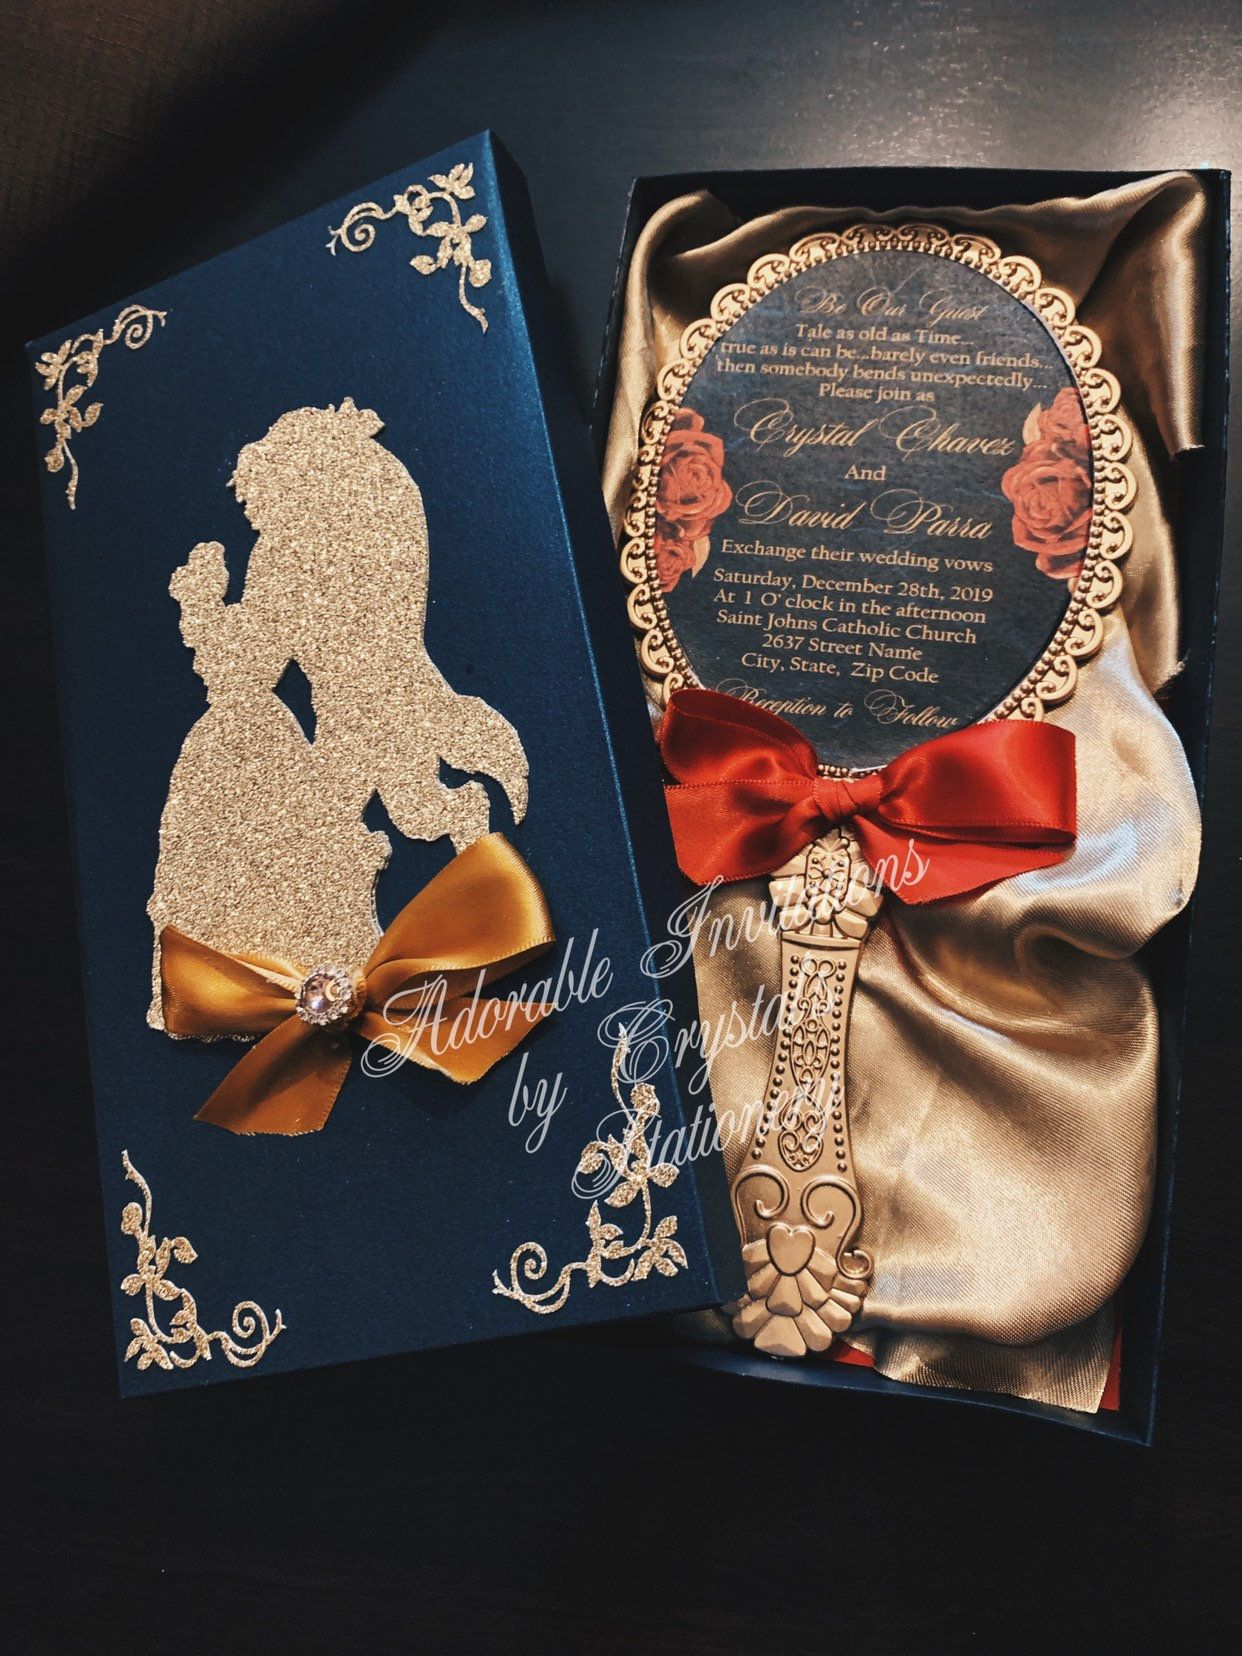 Beauty and the beast Invitations for wedding Quinceañera sweet sixteen or any other event #fiestade15años